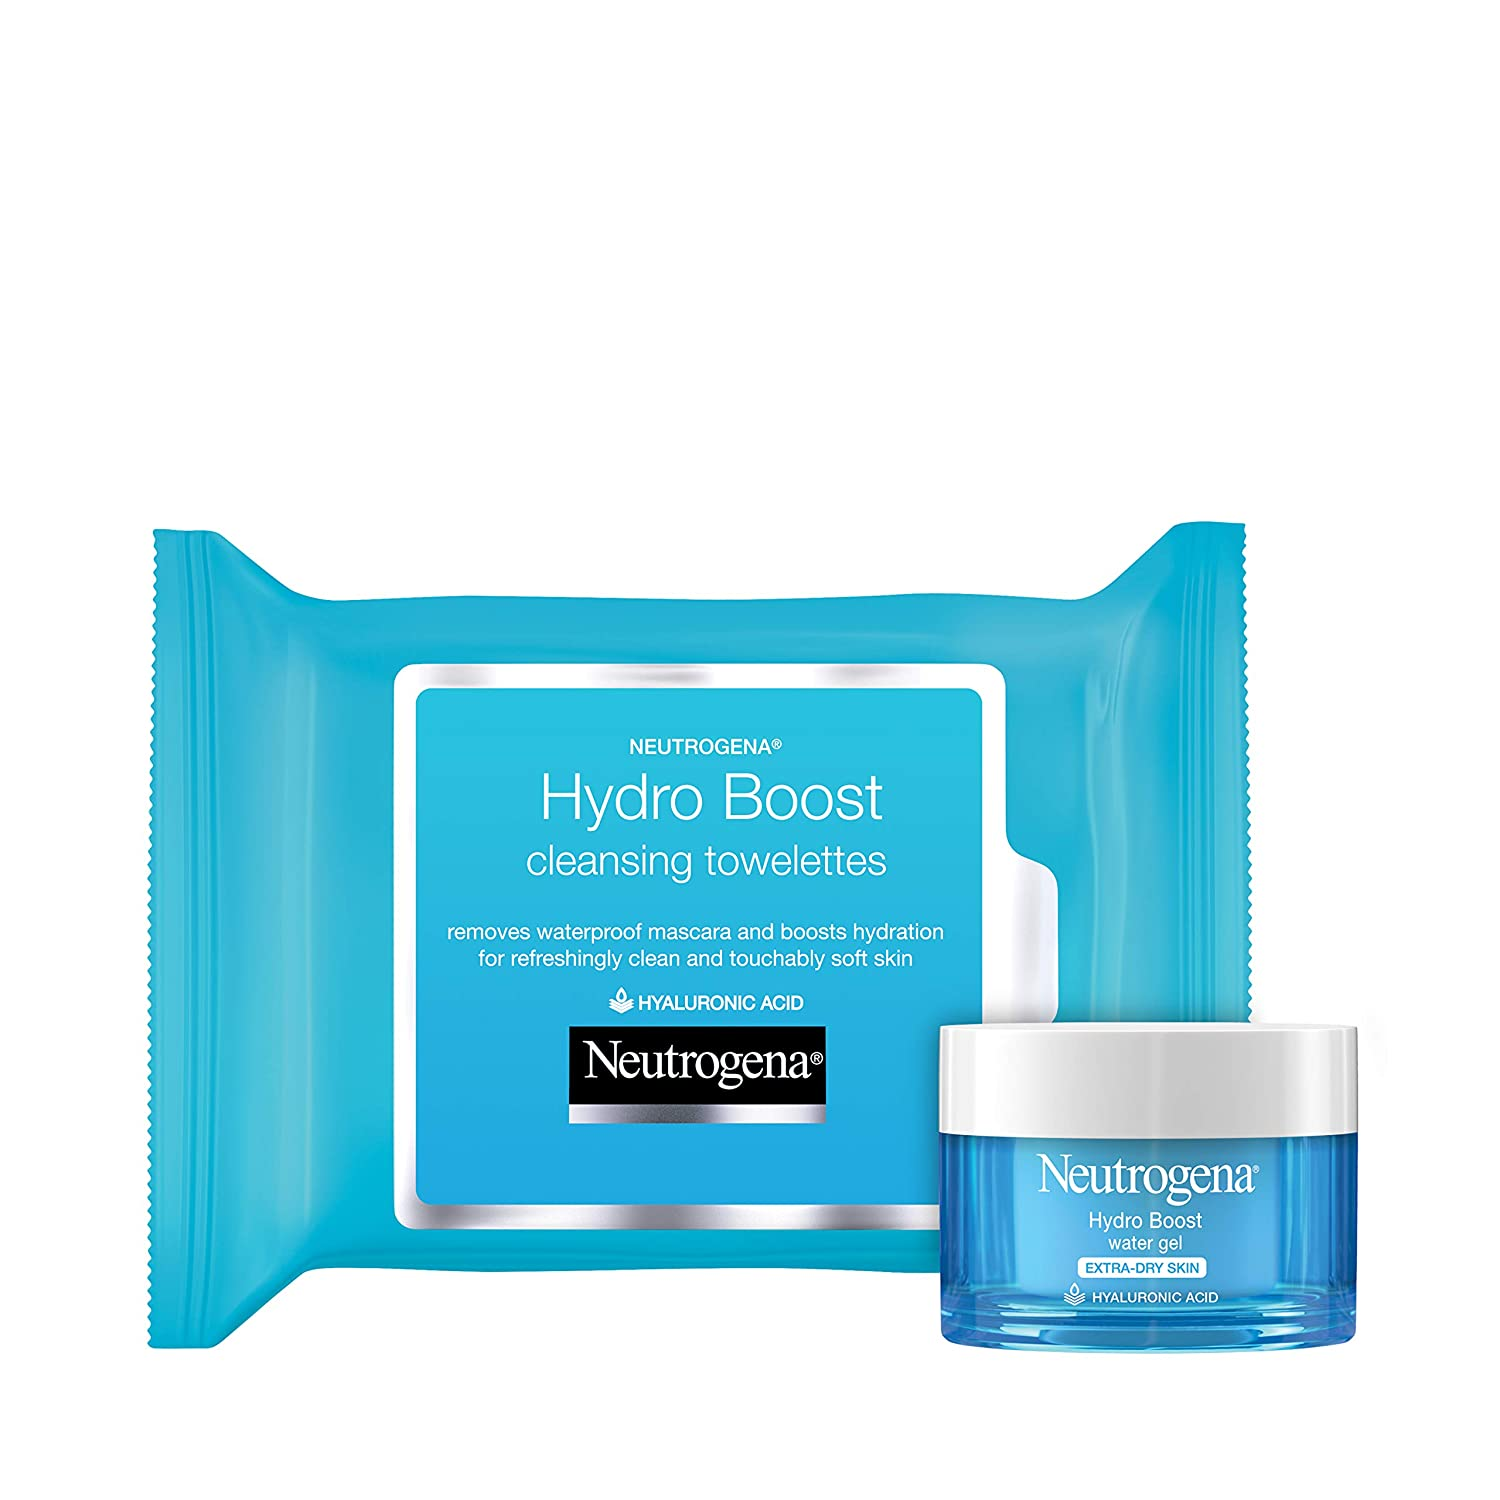 Neutrogena Hydro Boost Hydrating Facial Cleansing Makeup Remover Wipes, Hyaluronic Acid, Twin Pack, 2 x 25 ct, & Hydro Boost Hydrating Gel-Cream Face Moisturizer, Hyaluronic Acid, 1.7 oz